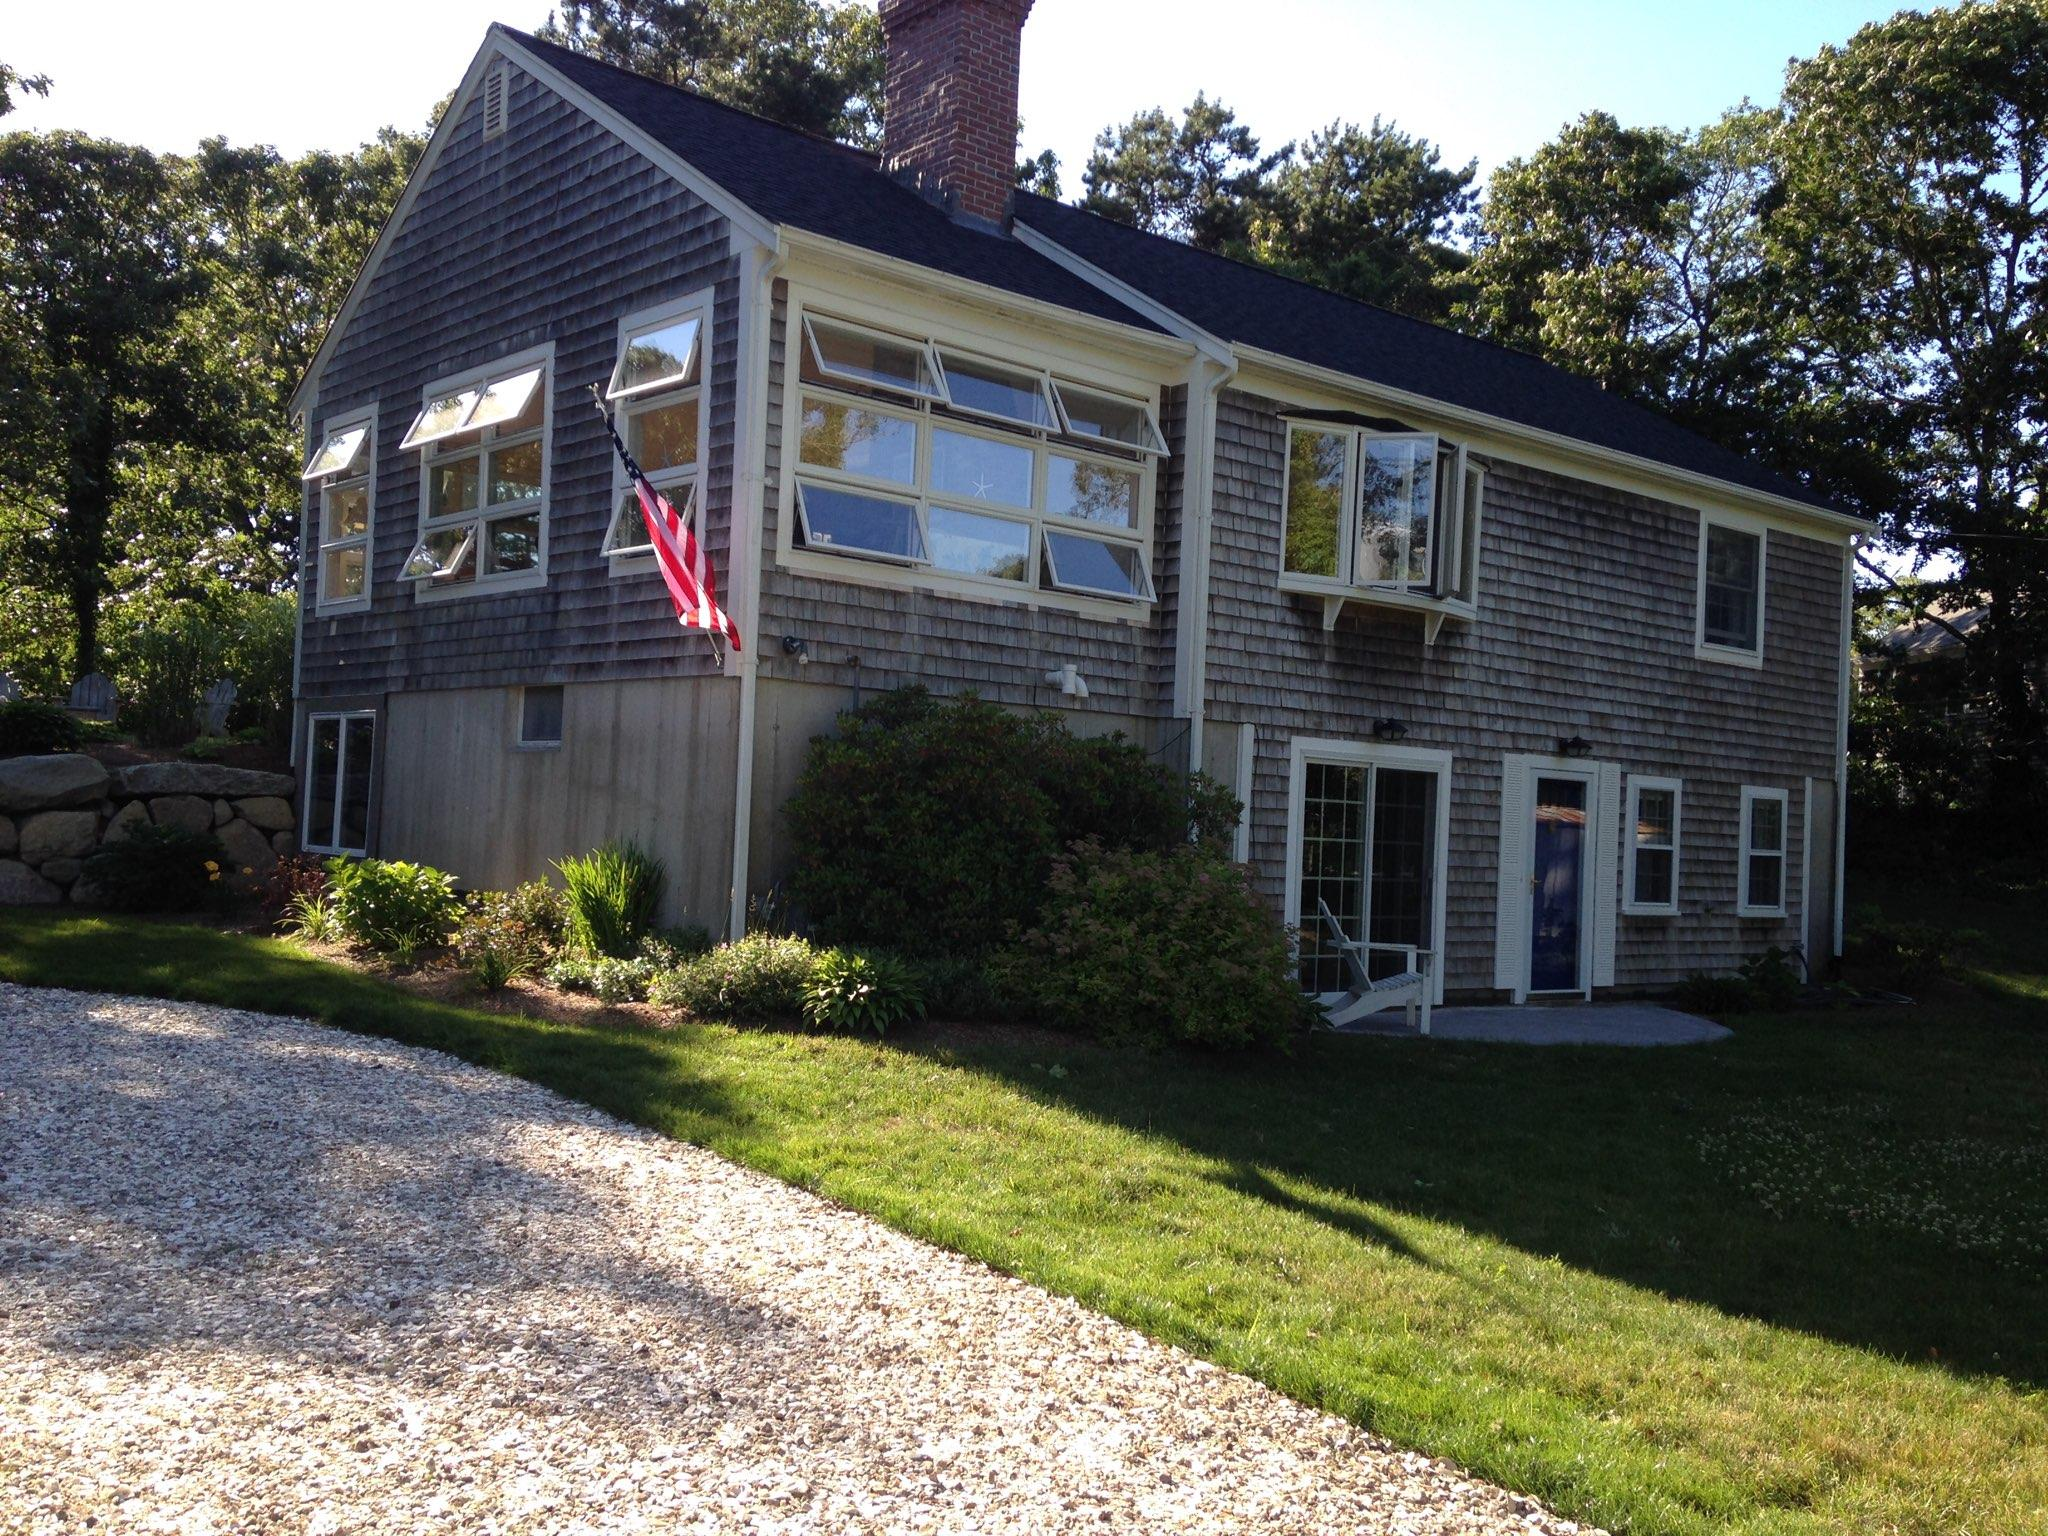 93-tower-hill-circle-brewster-ma-02631